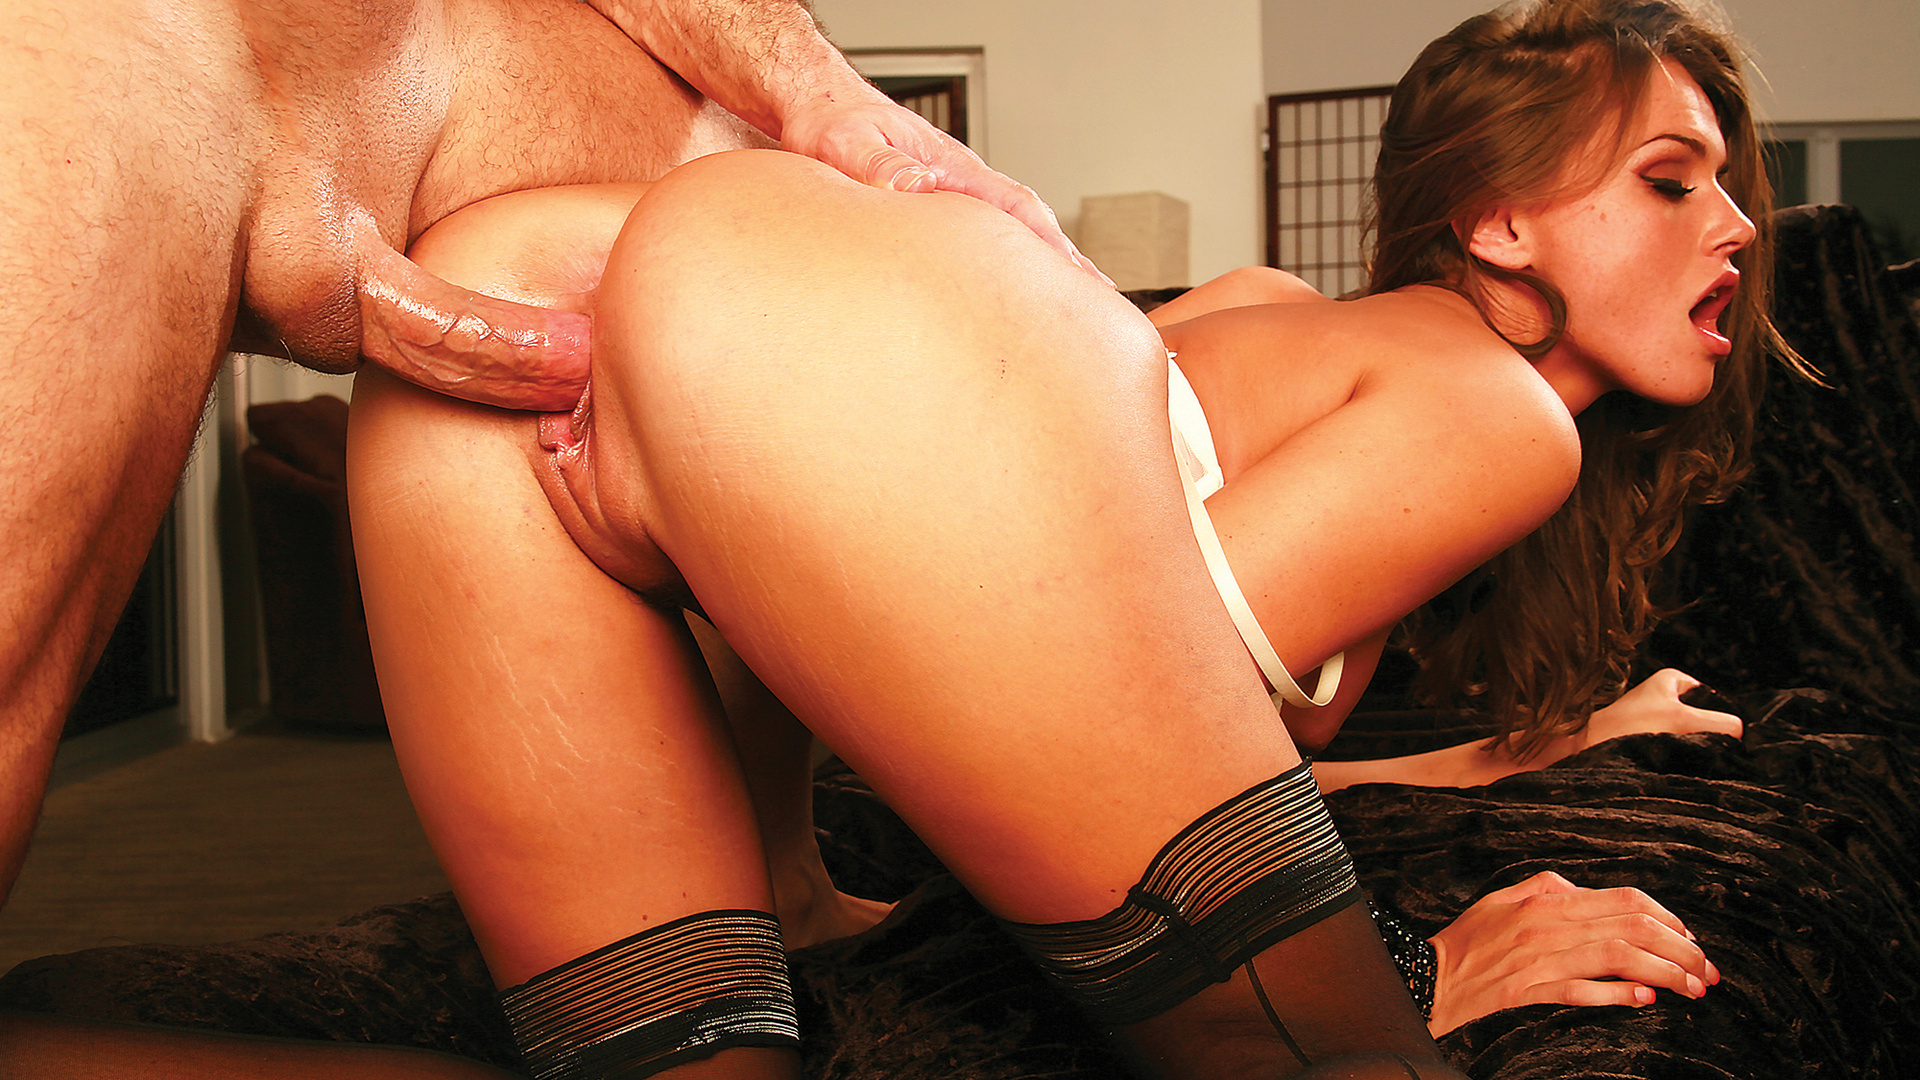 Famous Tori Black getting it on the pool table